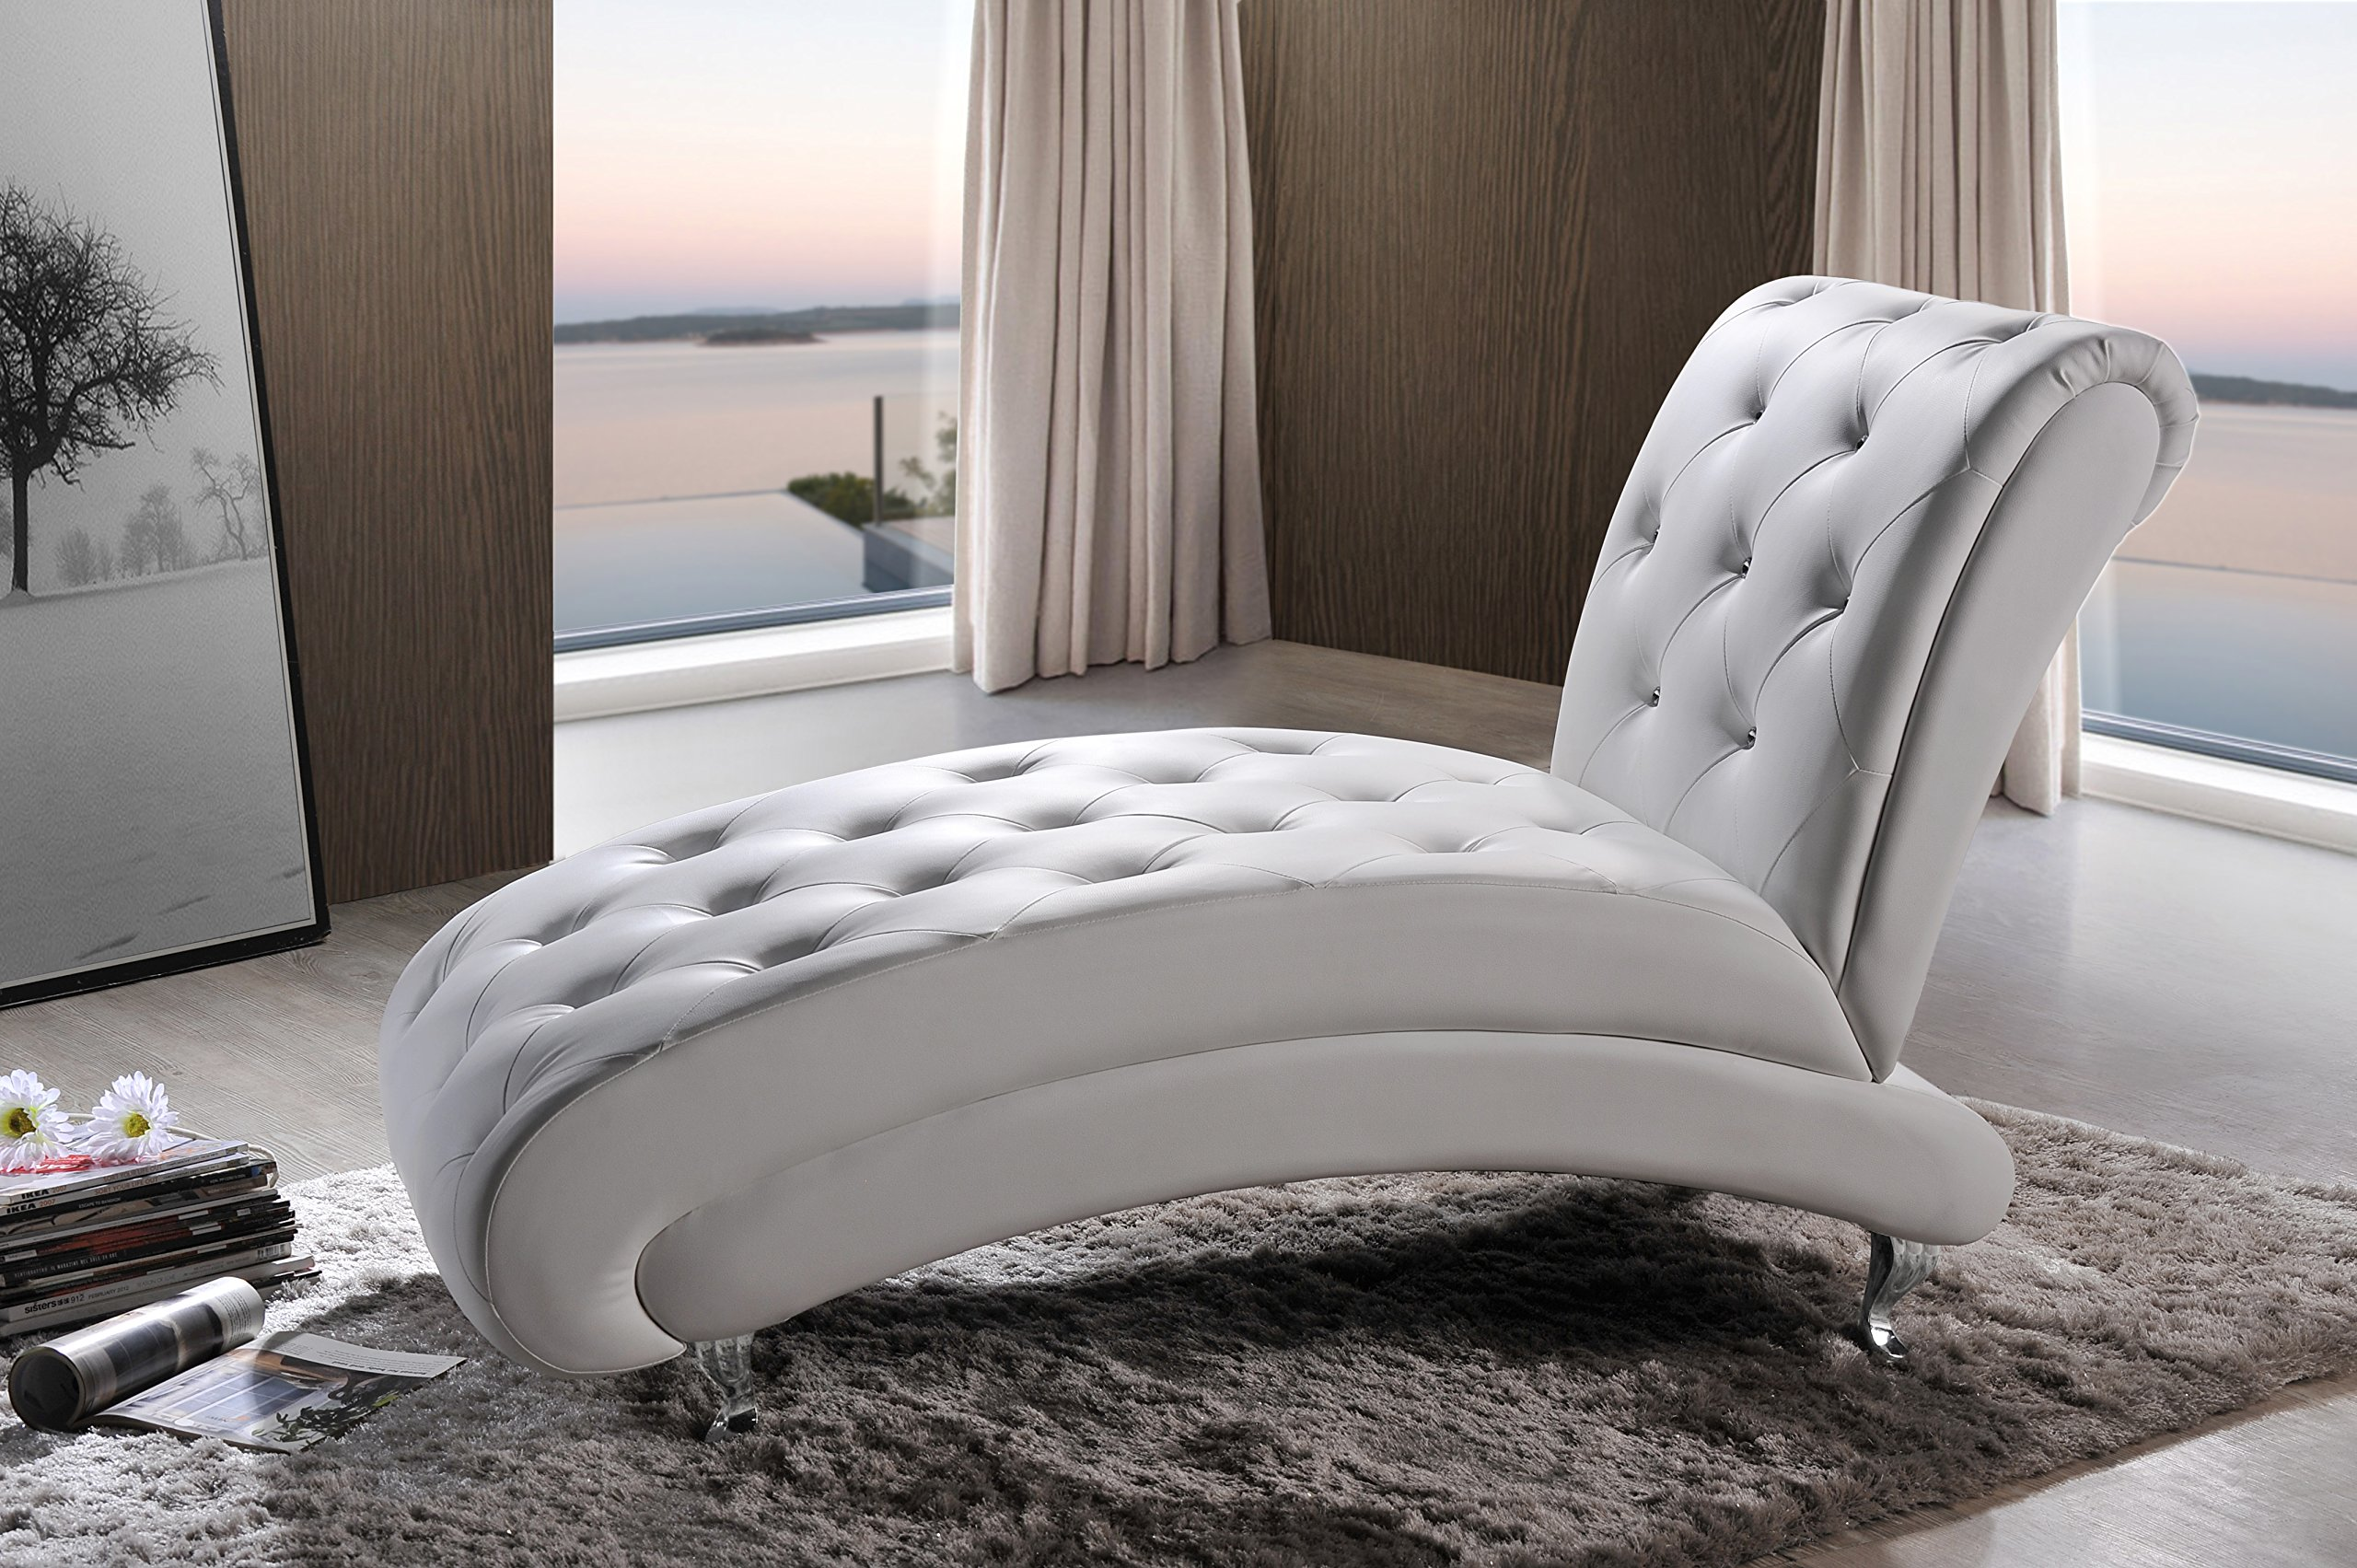 Baxton Studio Pease Contemporary Faux Leather Upholstered Crystal Button Tufted Chaise Lounge, White